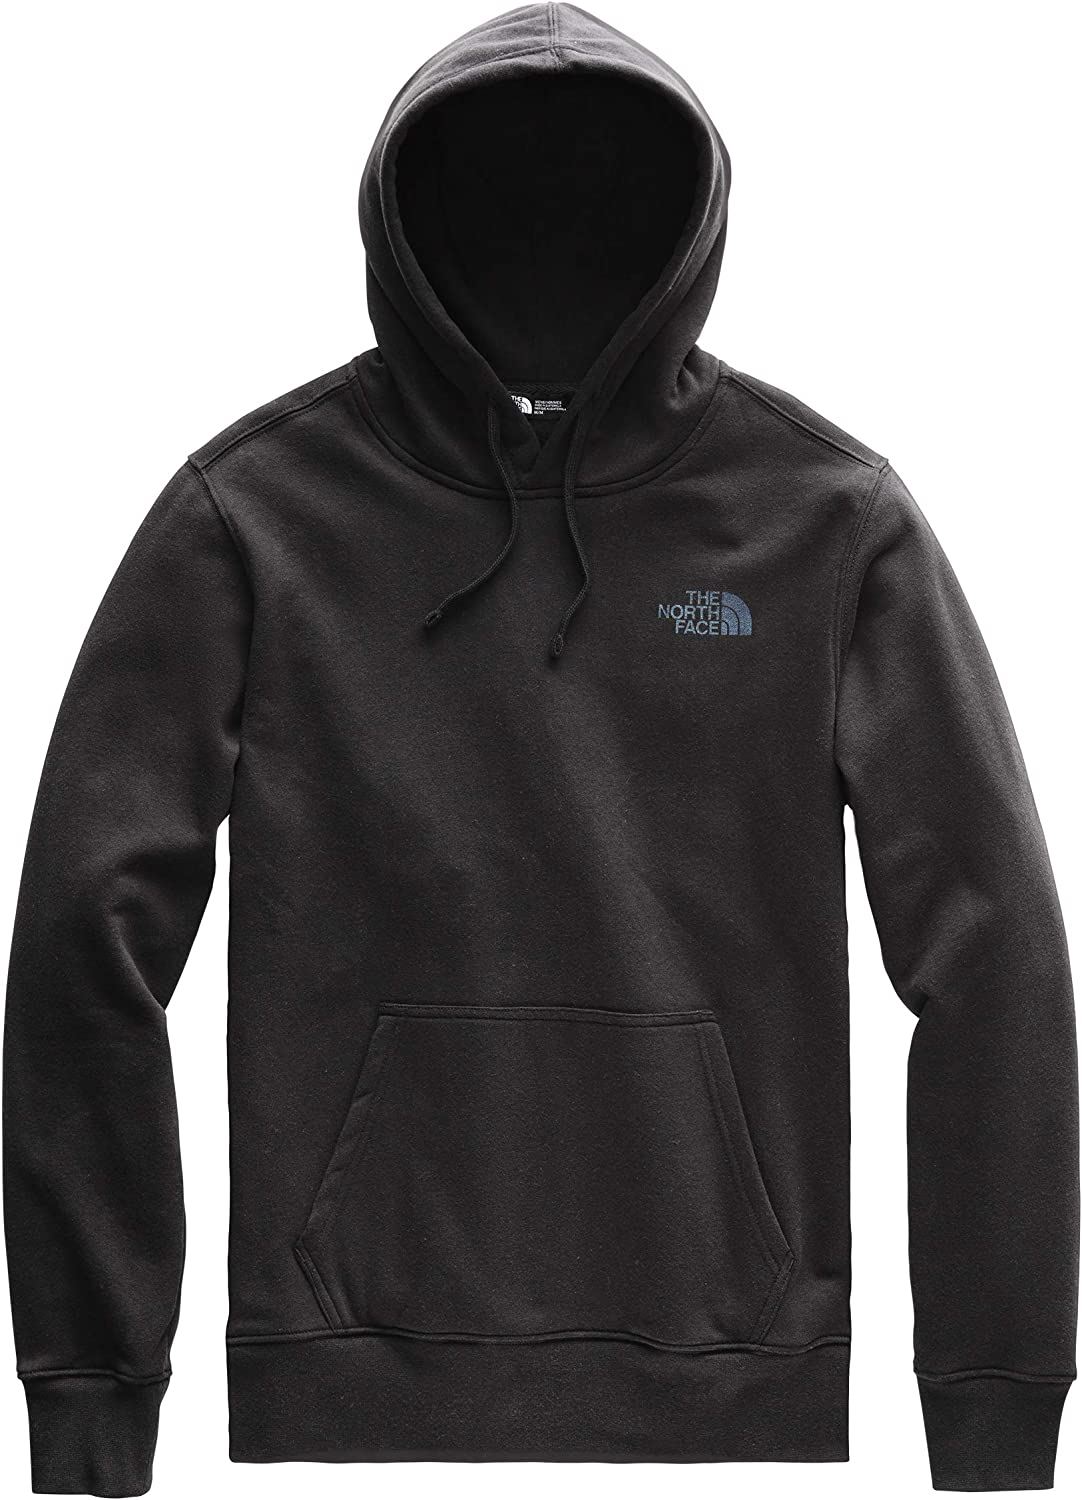 The North Face Damen Red Box Hoodie Tnf Schwarz / Iridescent Multi